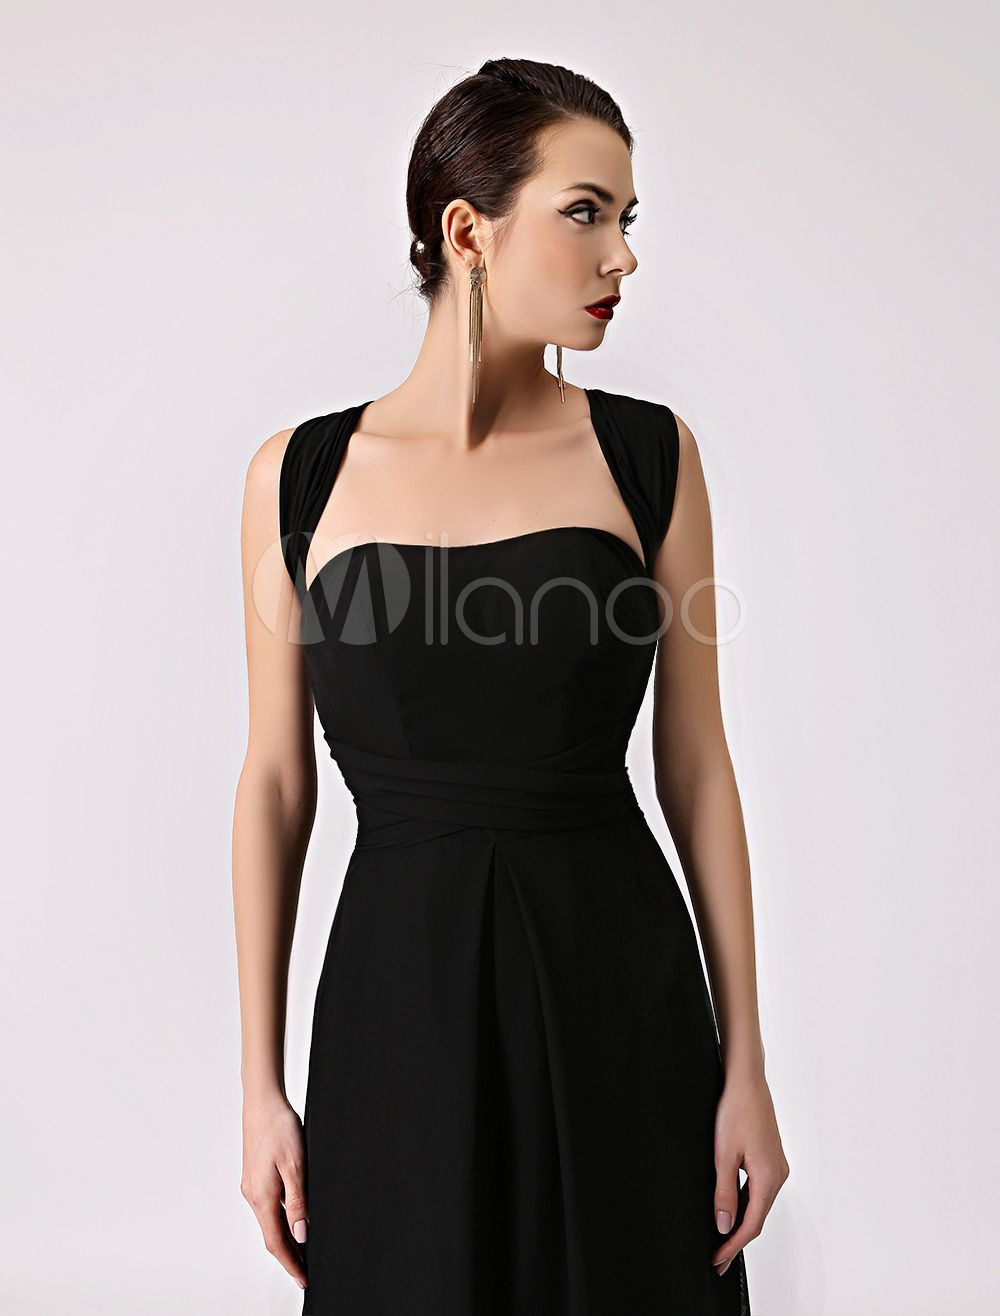 Black Bridesmaid Jumpsuit Straps convertible Backless Chiffon Wide Leg Pants Milanoo #bridesmaidjumpsuits Black Bridesmaid Jumpsuit Straps convertible Backless Chiffon Wide Leg Pants Milanoo #bridesmaidjumpsuits